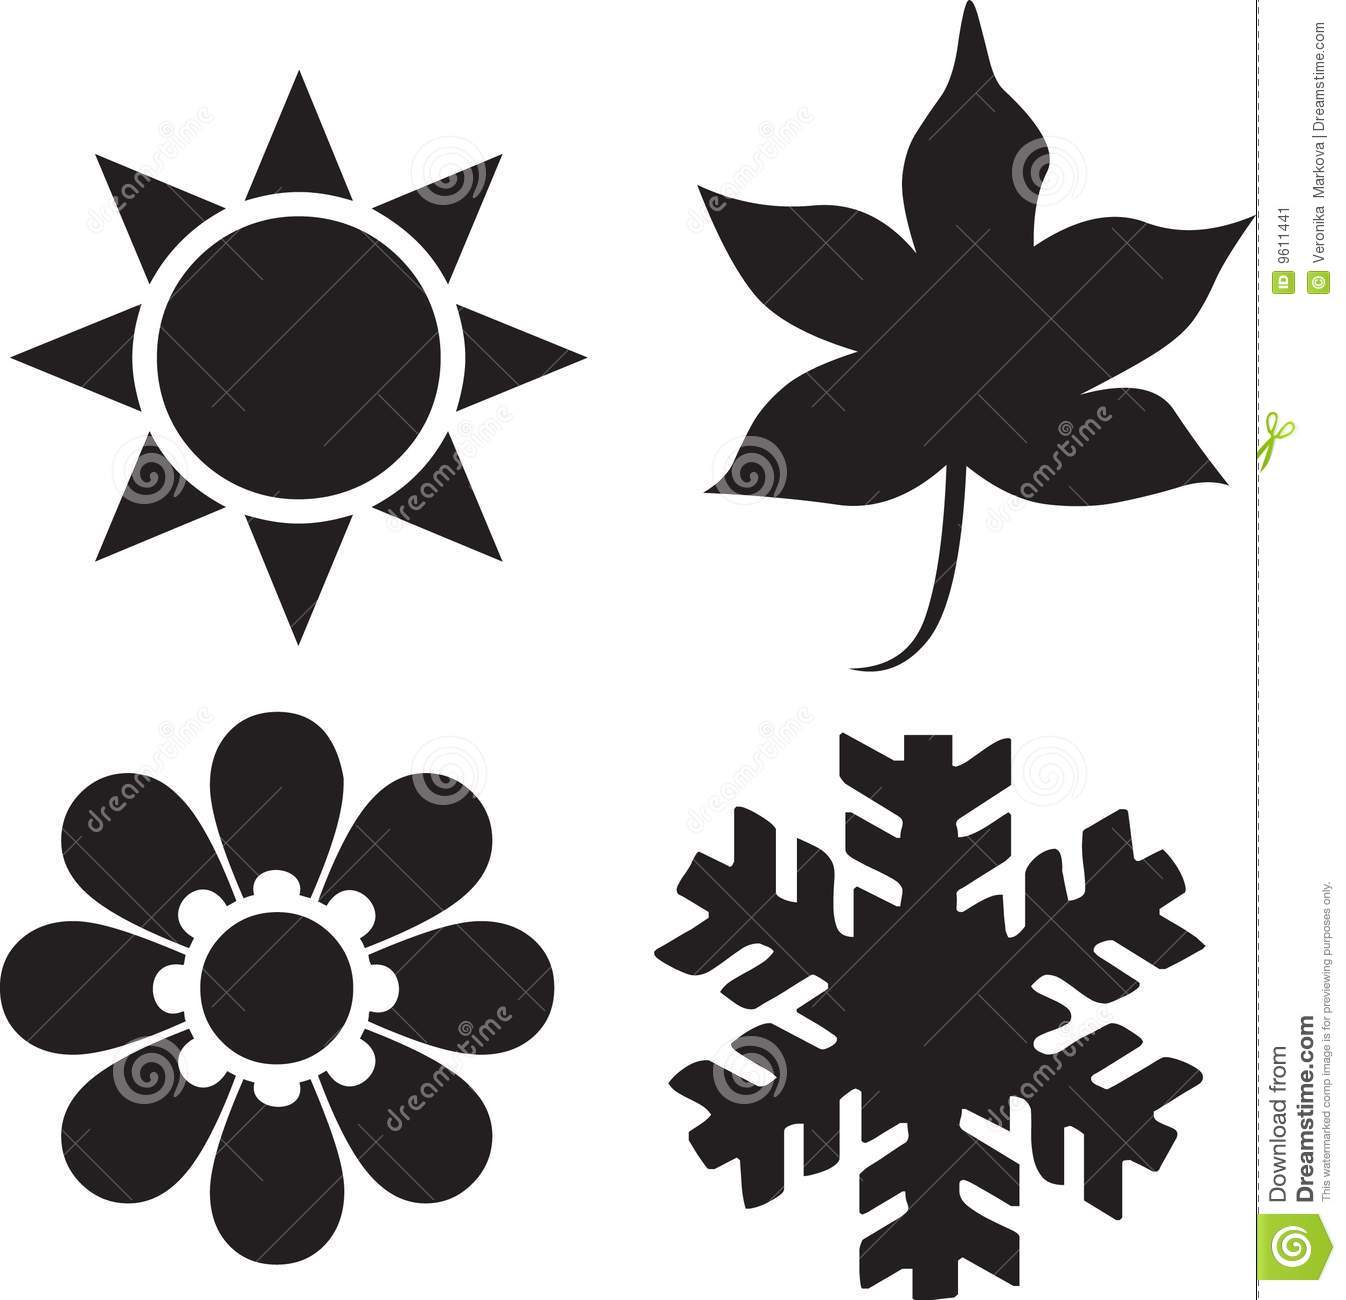 Four Seasons Clipart Black And White.